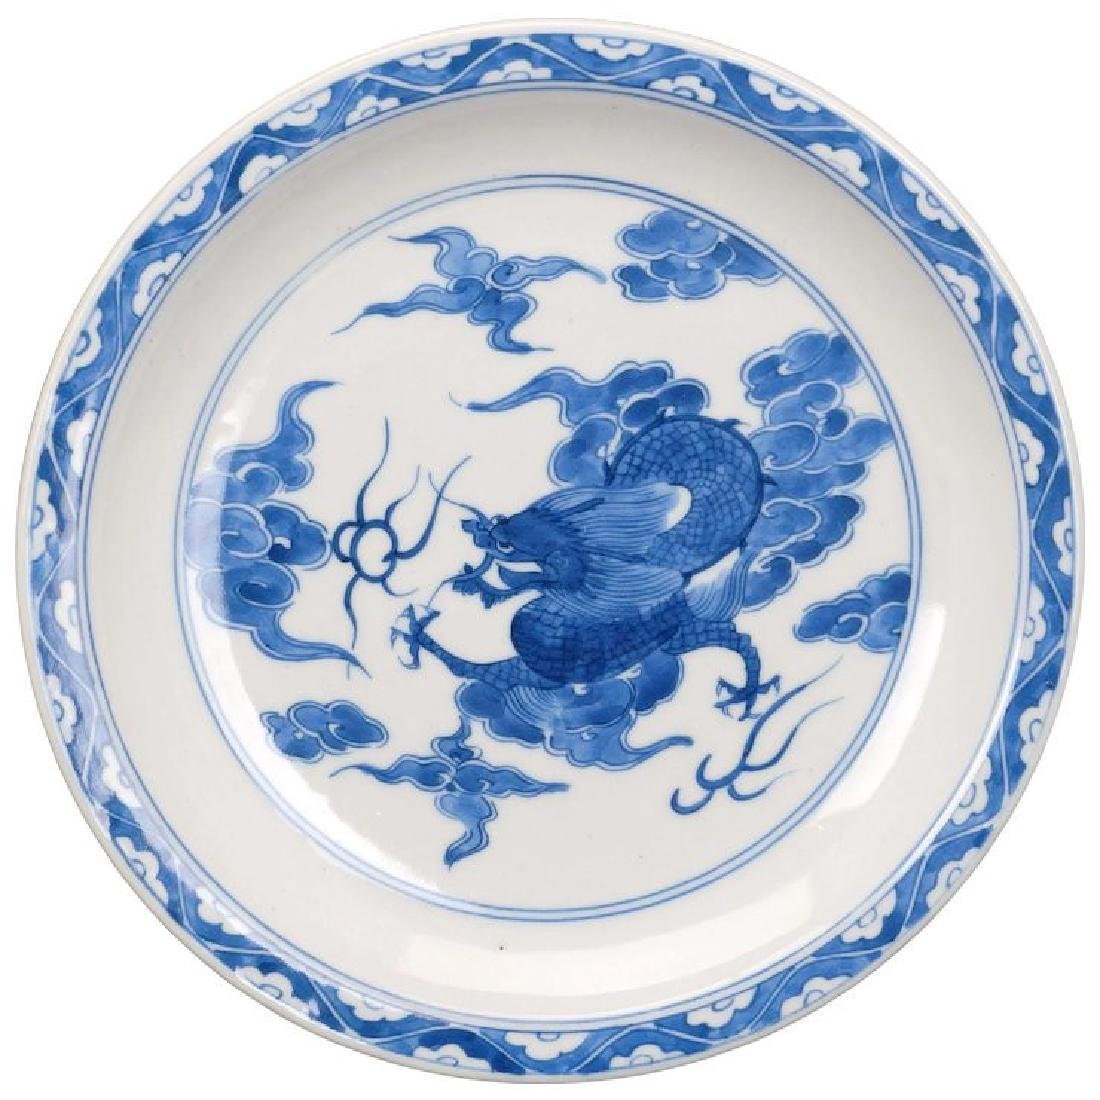 Japanese blue and white porcelain plate with a dragon